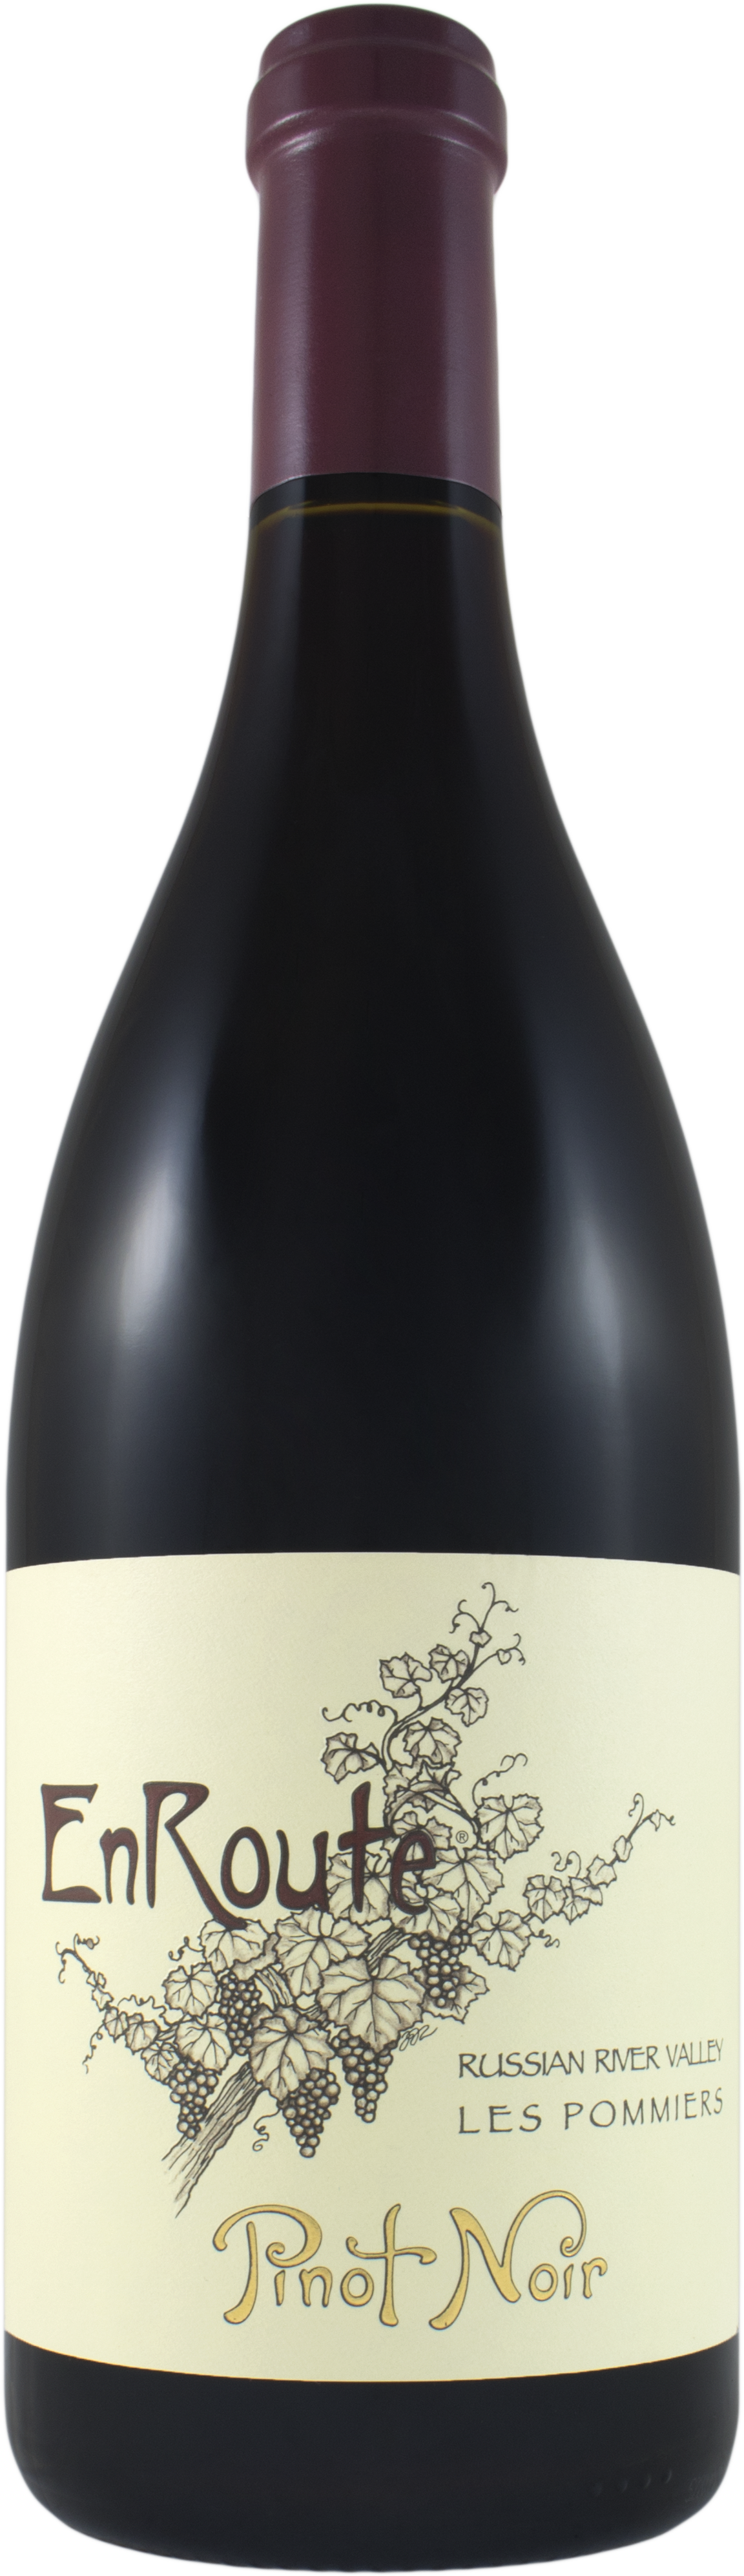 2018 Enroute Russian River Valley Pinot Noir Les Pommiers | Wine Library